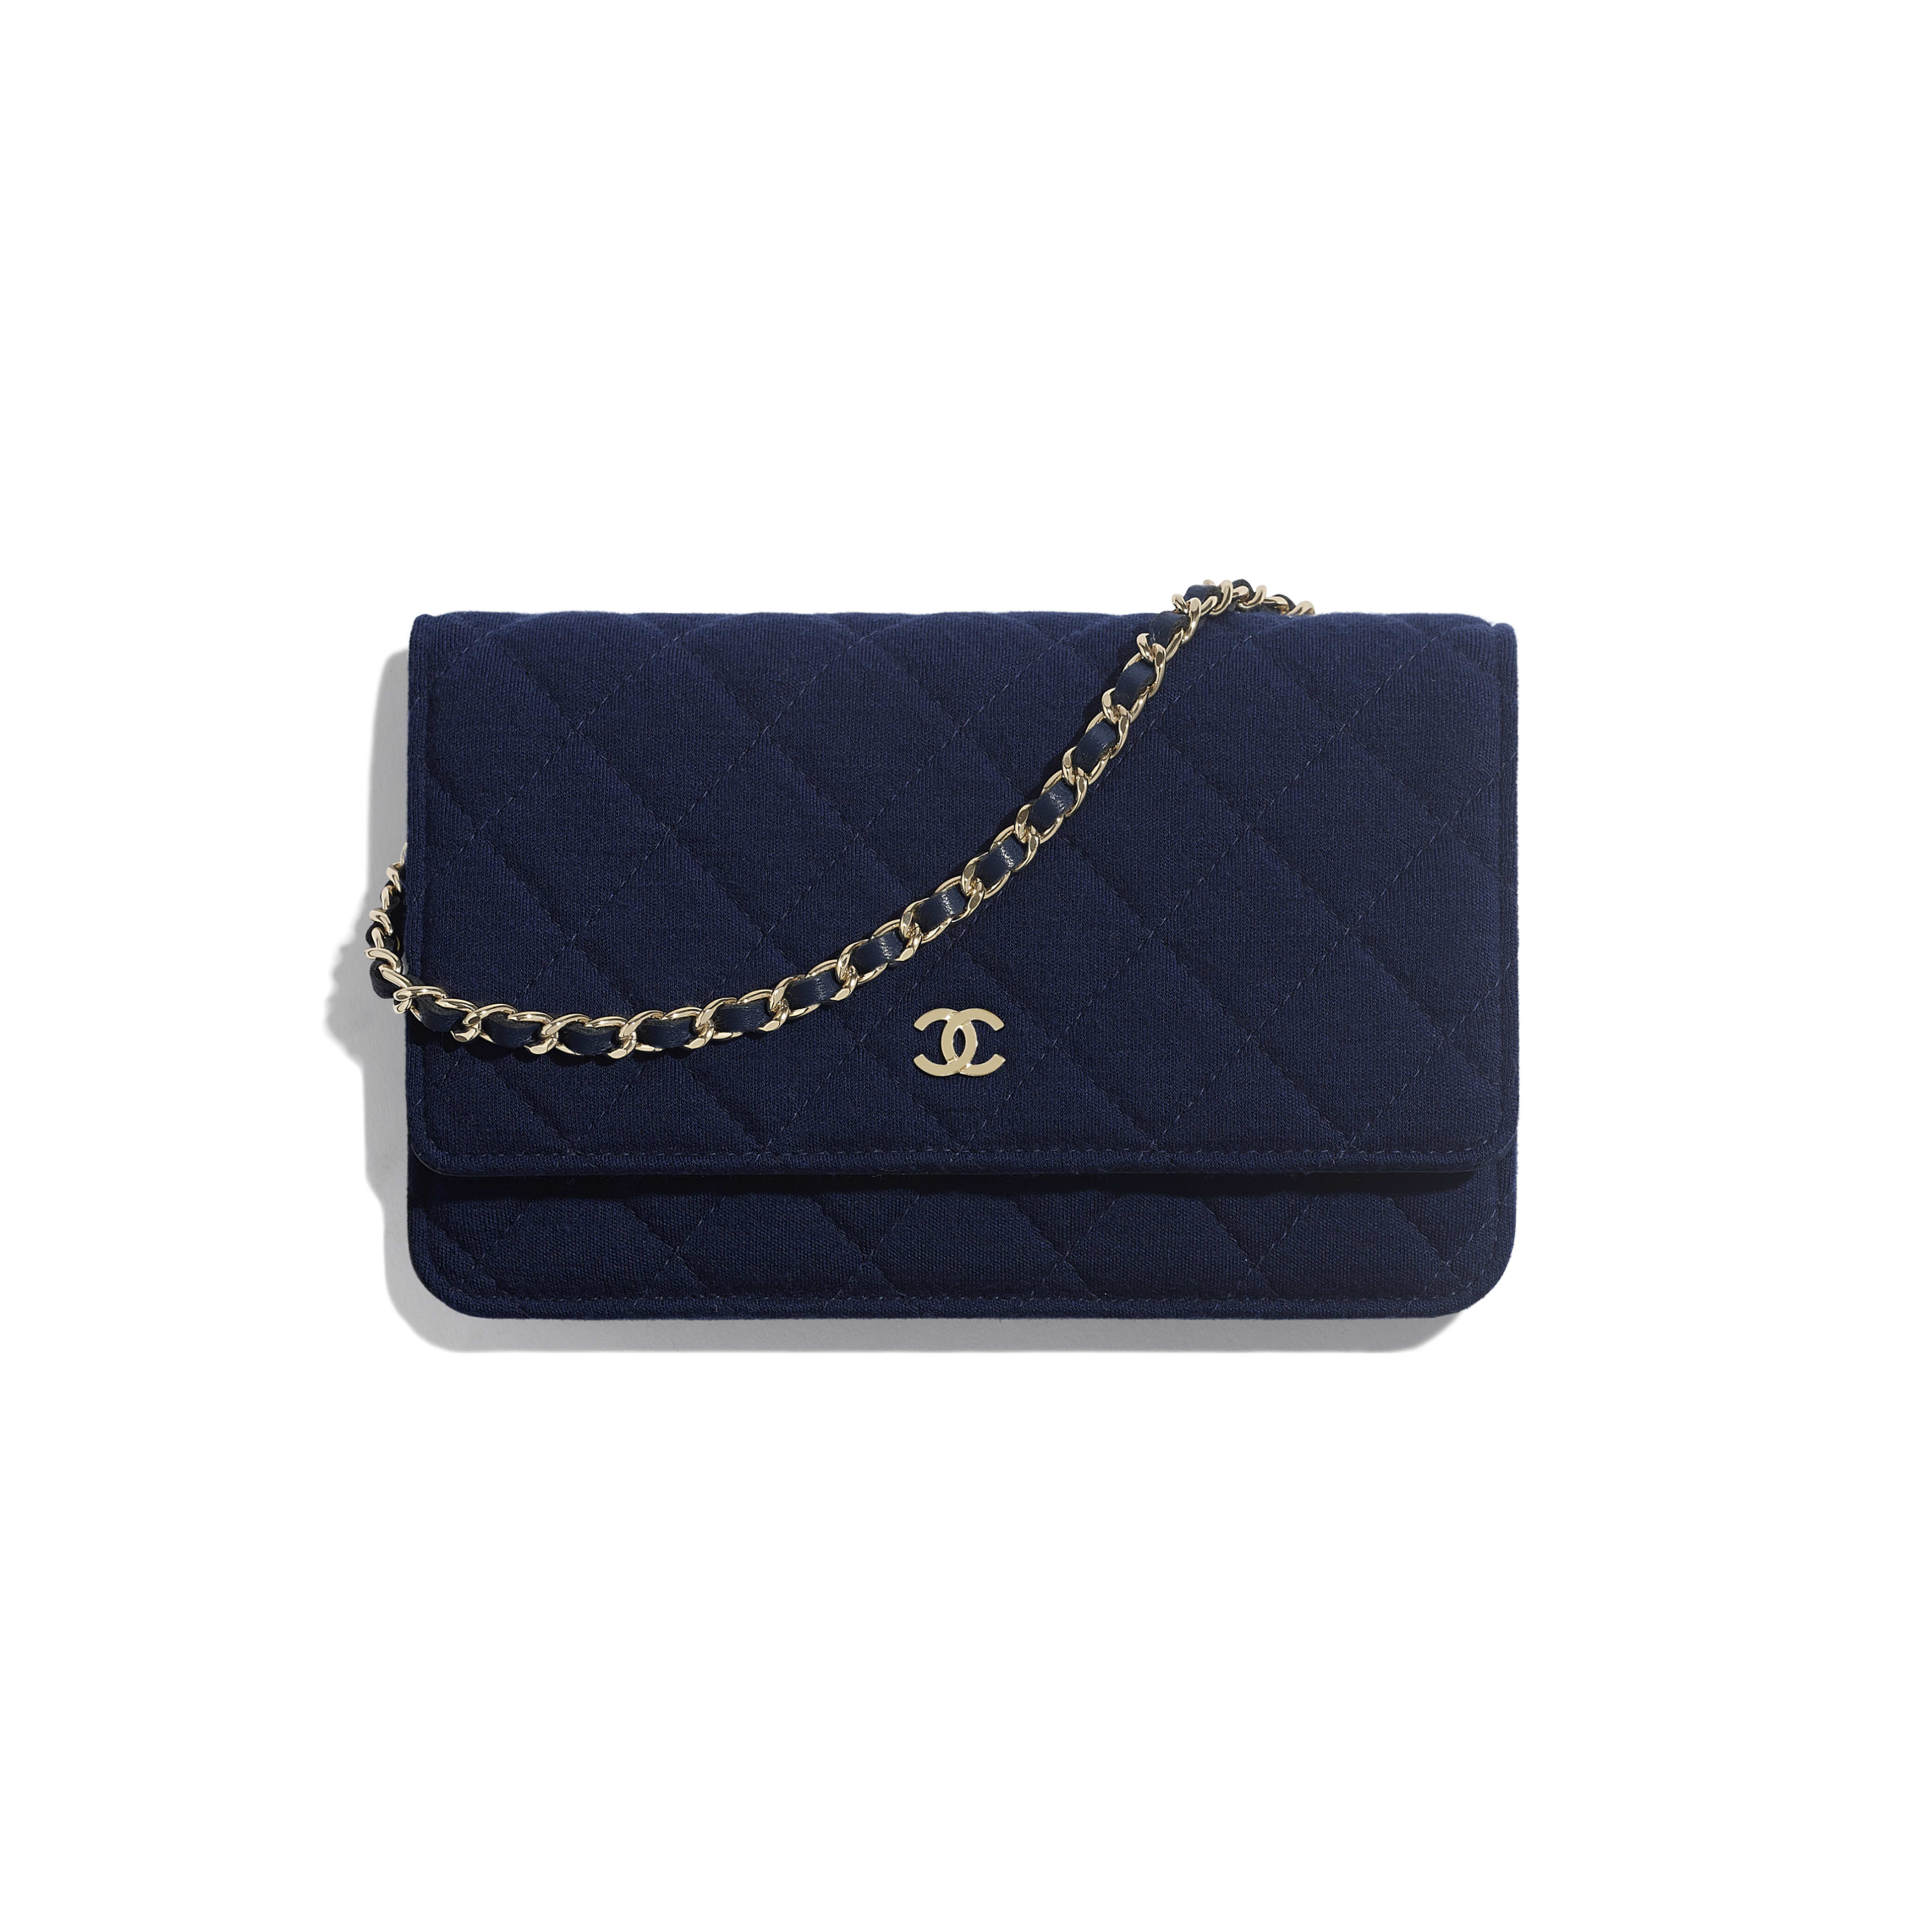 Classic Wallet On Chain - Navy Blue - Jersey & Gold Metal - Default view - see full sized version